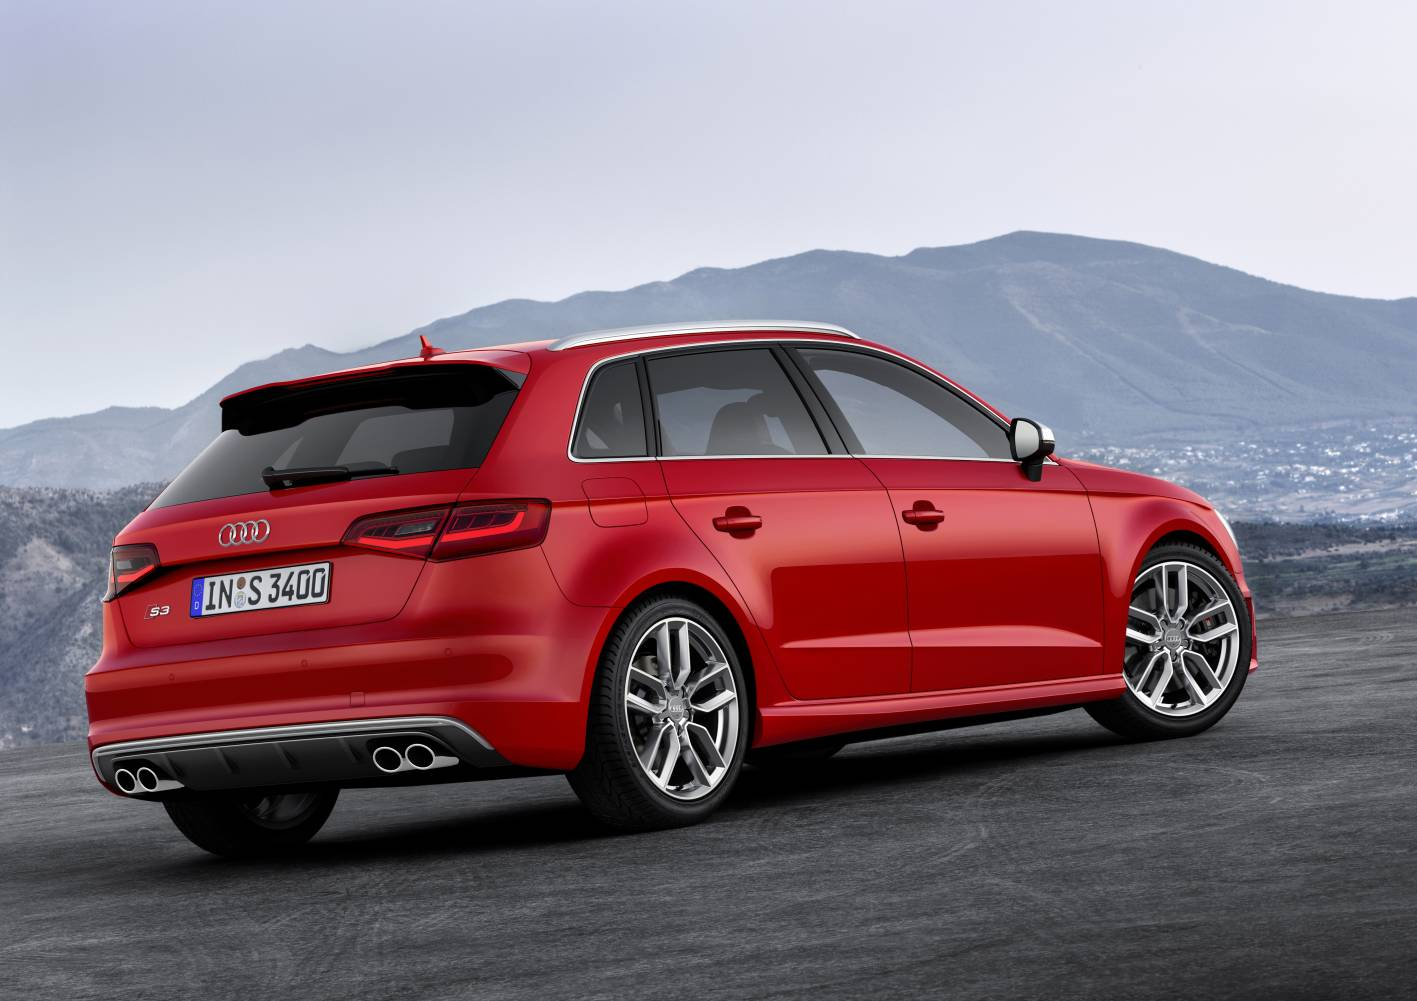 2013 audi s3 sportback revealed arriving in australia late 2013. Black Bedroom Furniture Sets. Home Design Ideas